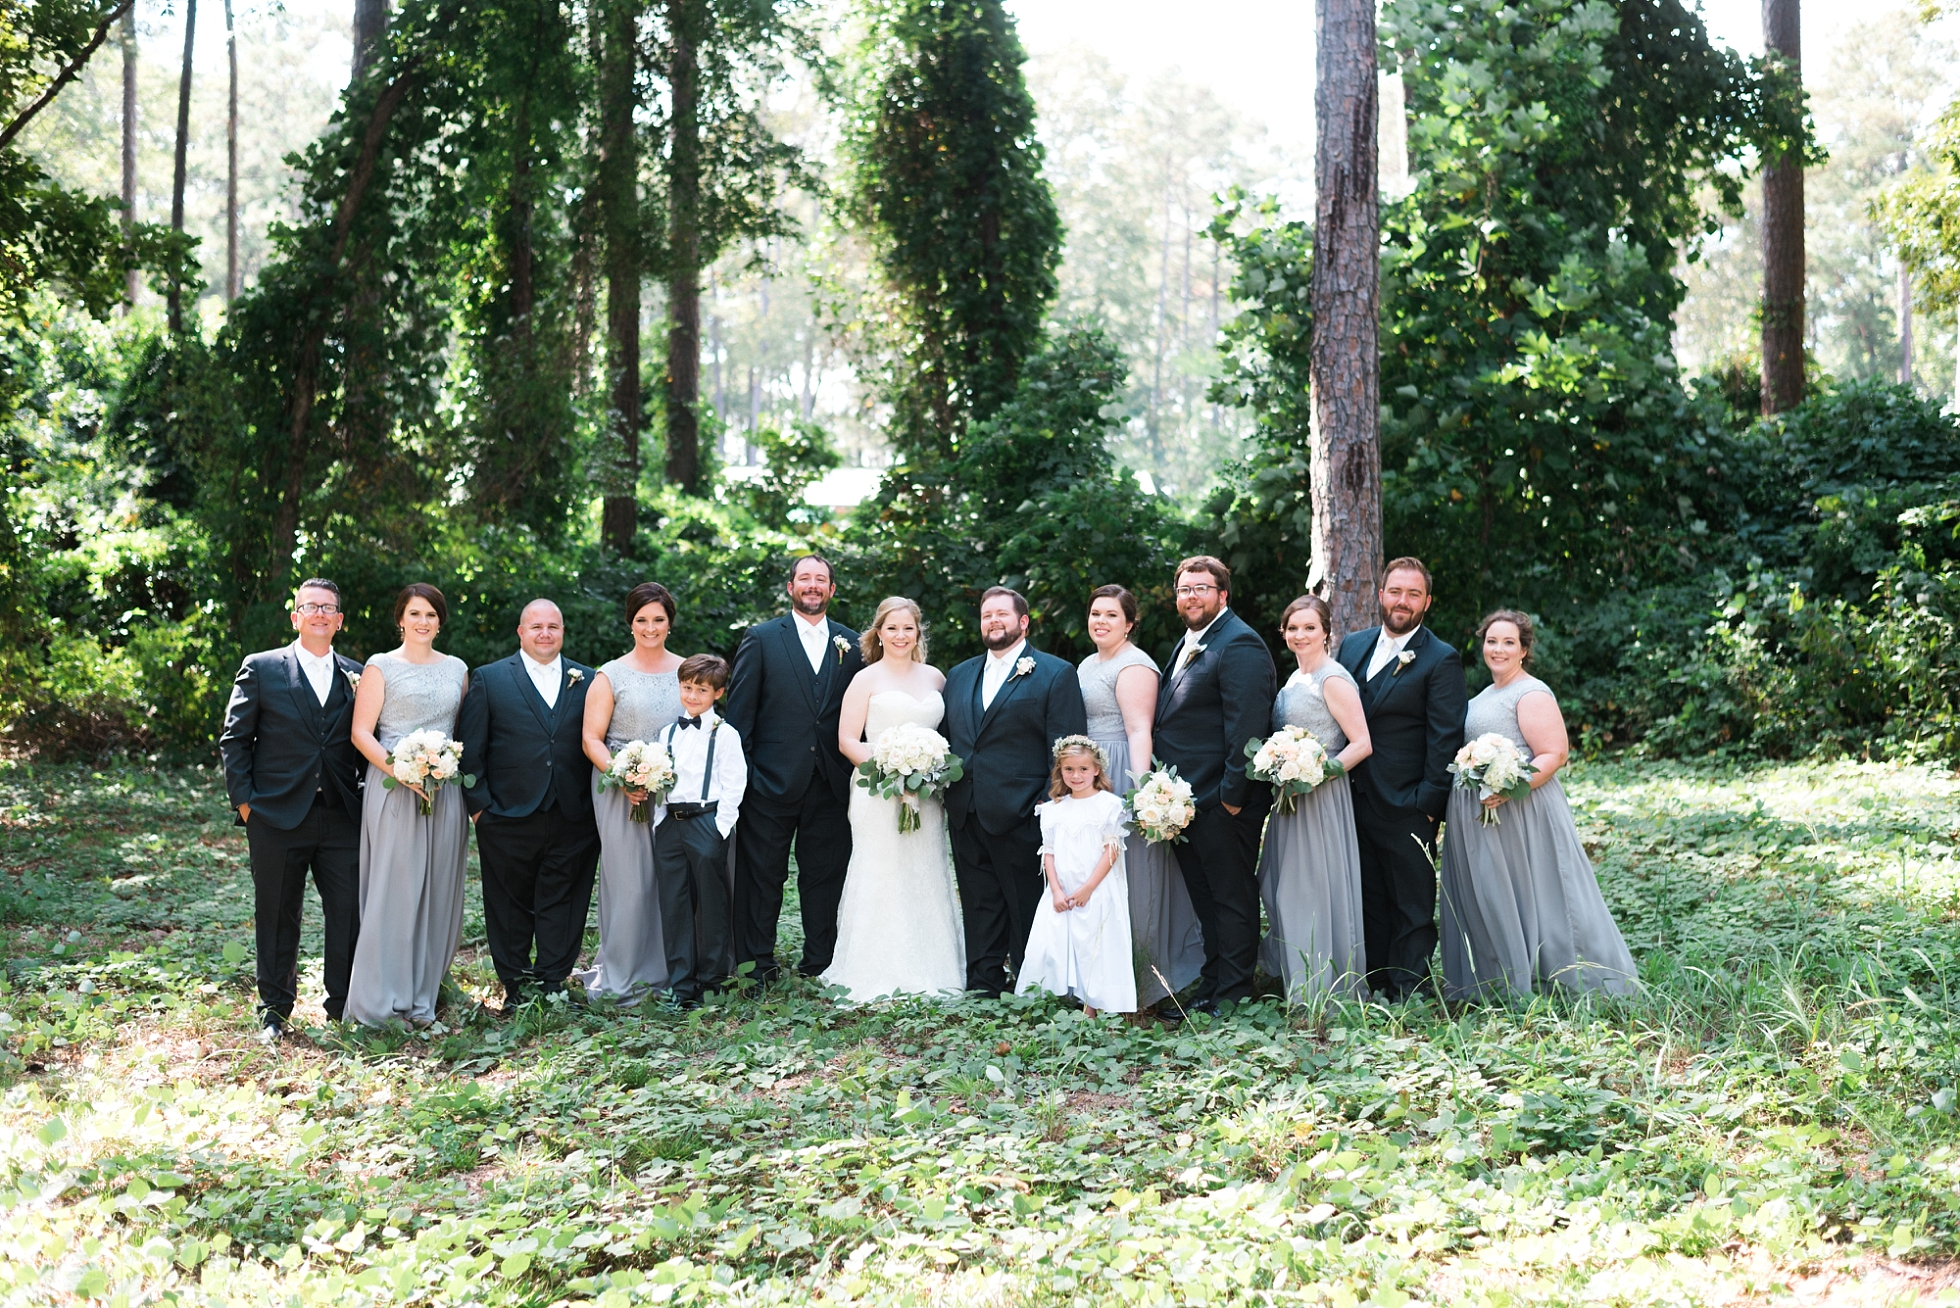 Wedding Party with Bride and Groom| Kyle & Erin | Scarbrough Wedding | Children's Harbor | Laura Wilkerson Photography